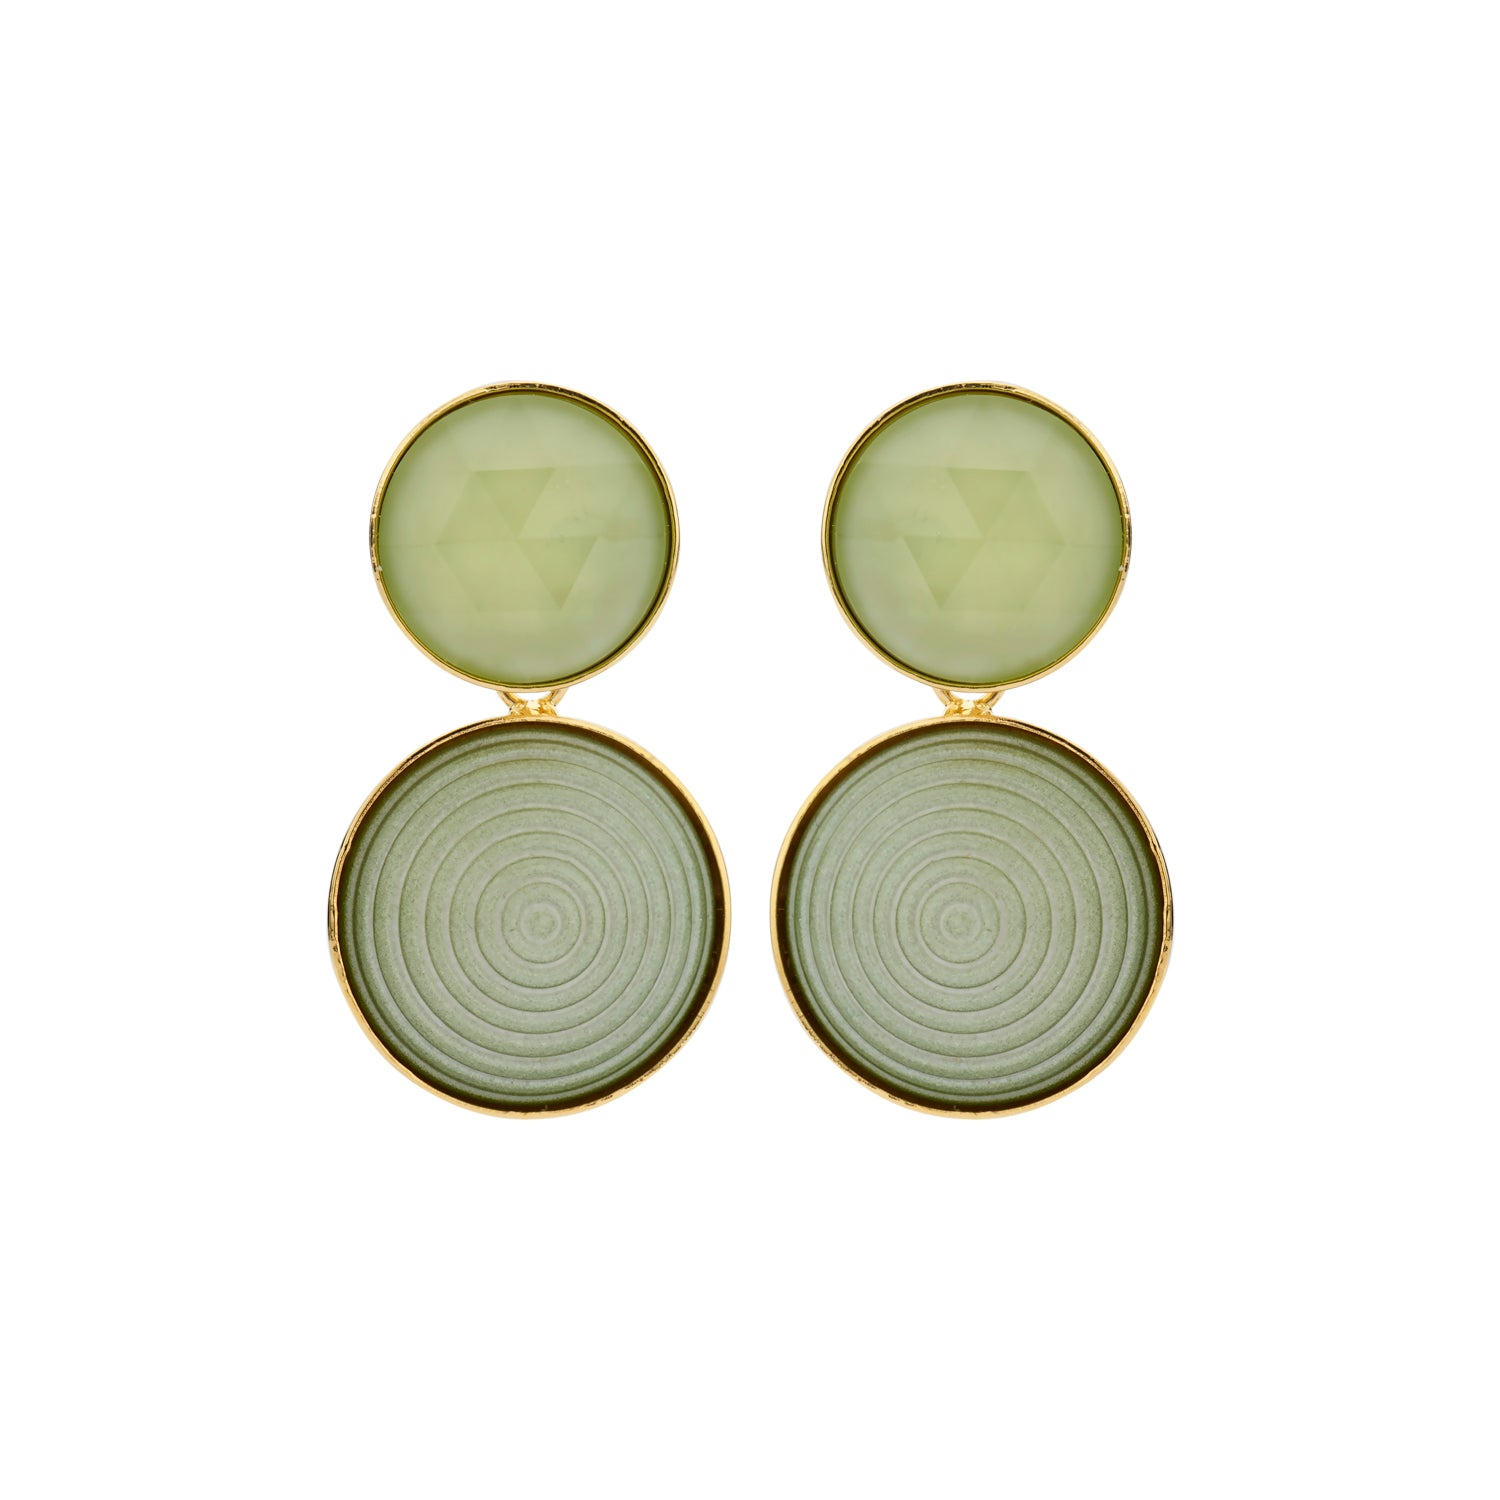 Lines Caro light kaki earrings - Souvenirs de Pomme